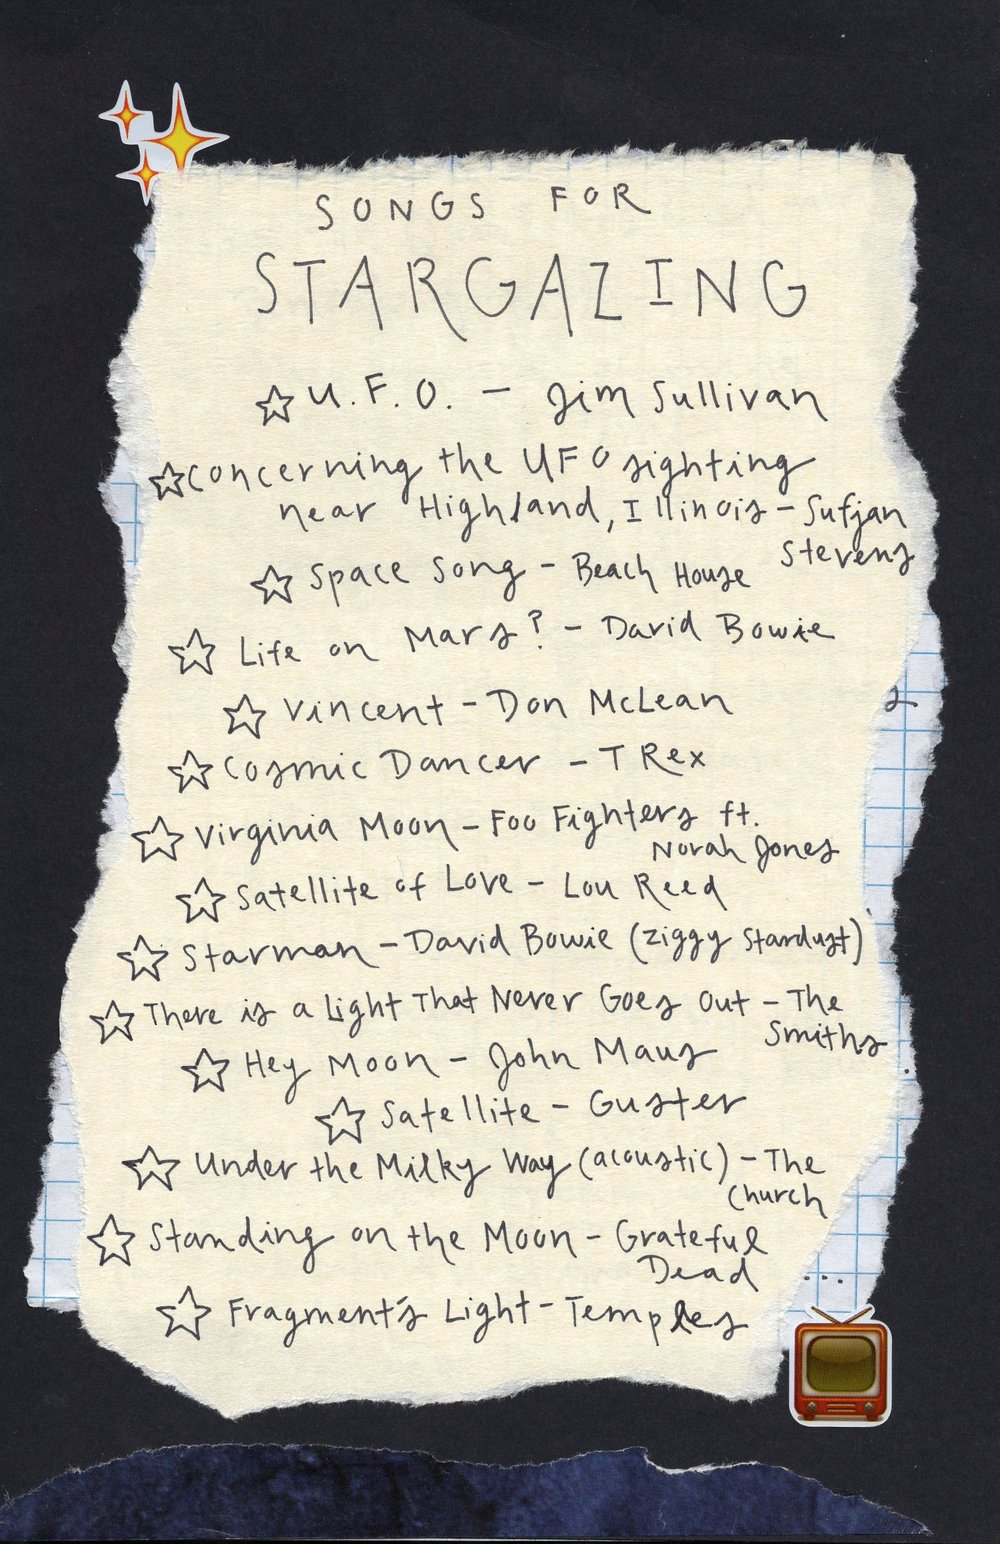 Songs-for-Stargazing-photo.jpg